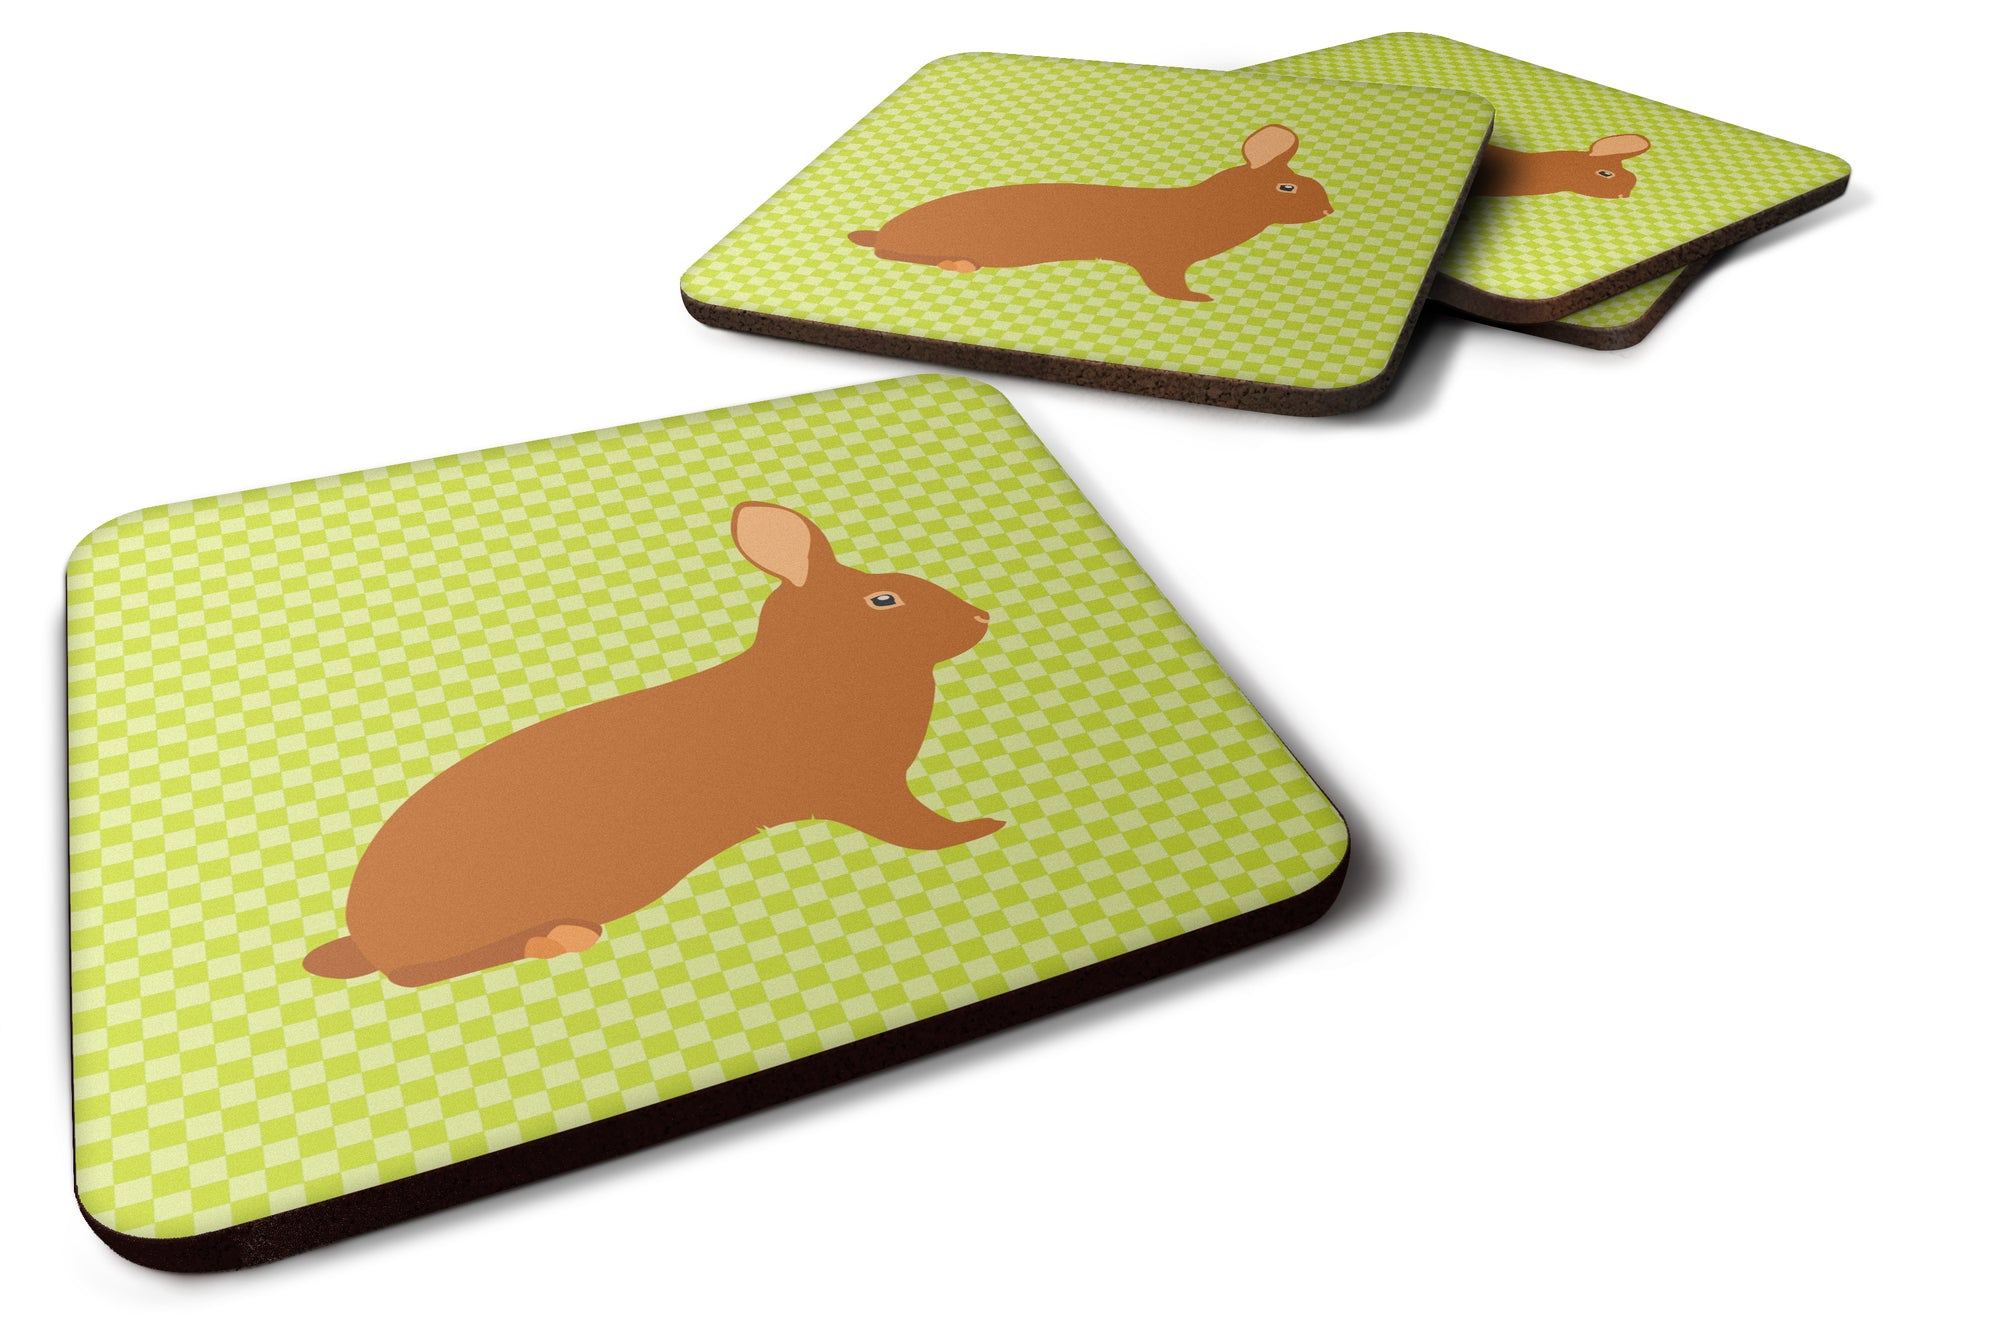 Rex Rabbit Green Foam Coaster Set of 4 BB7795FC by Caroline's Treasures